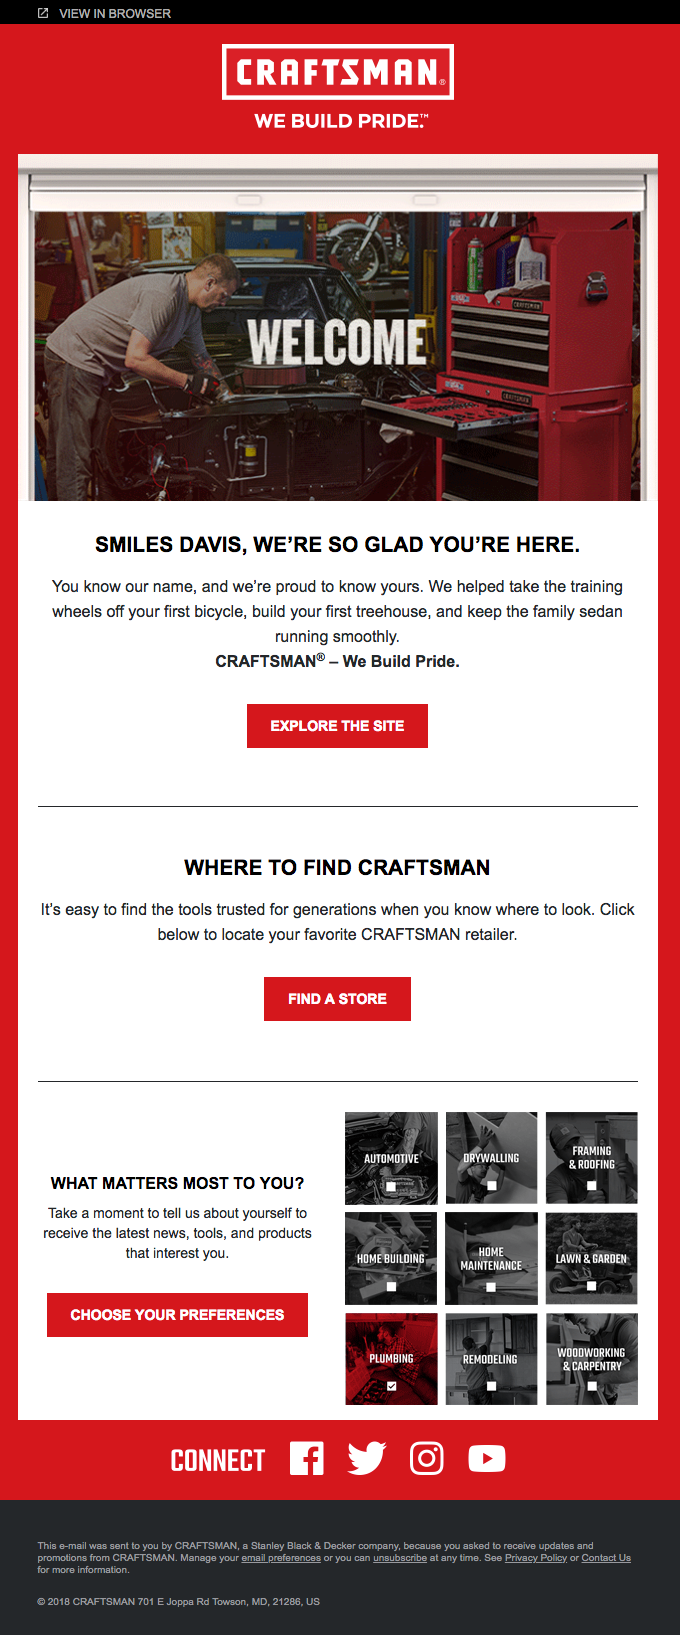 craftsman welcome email